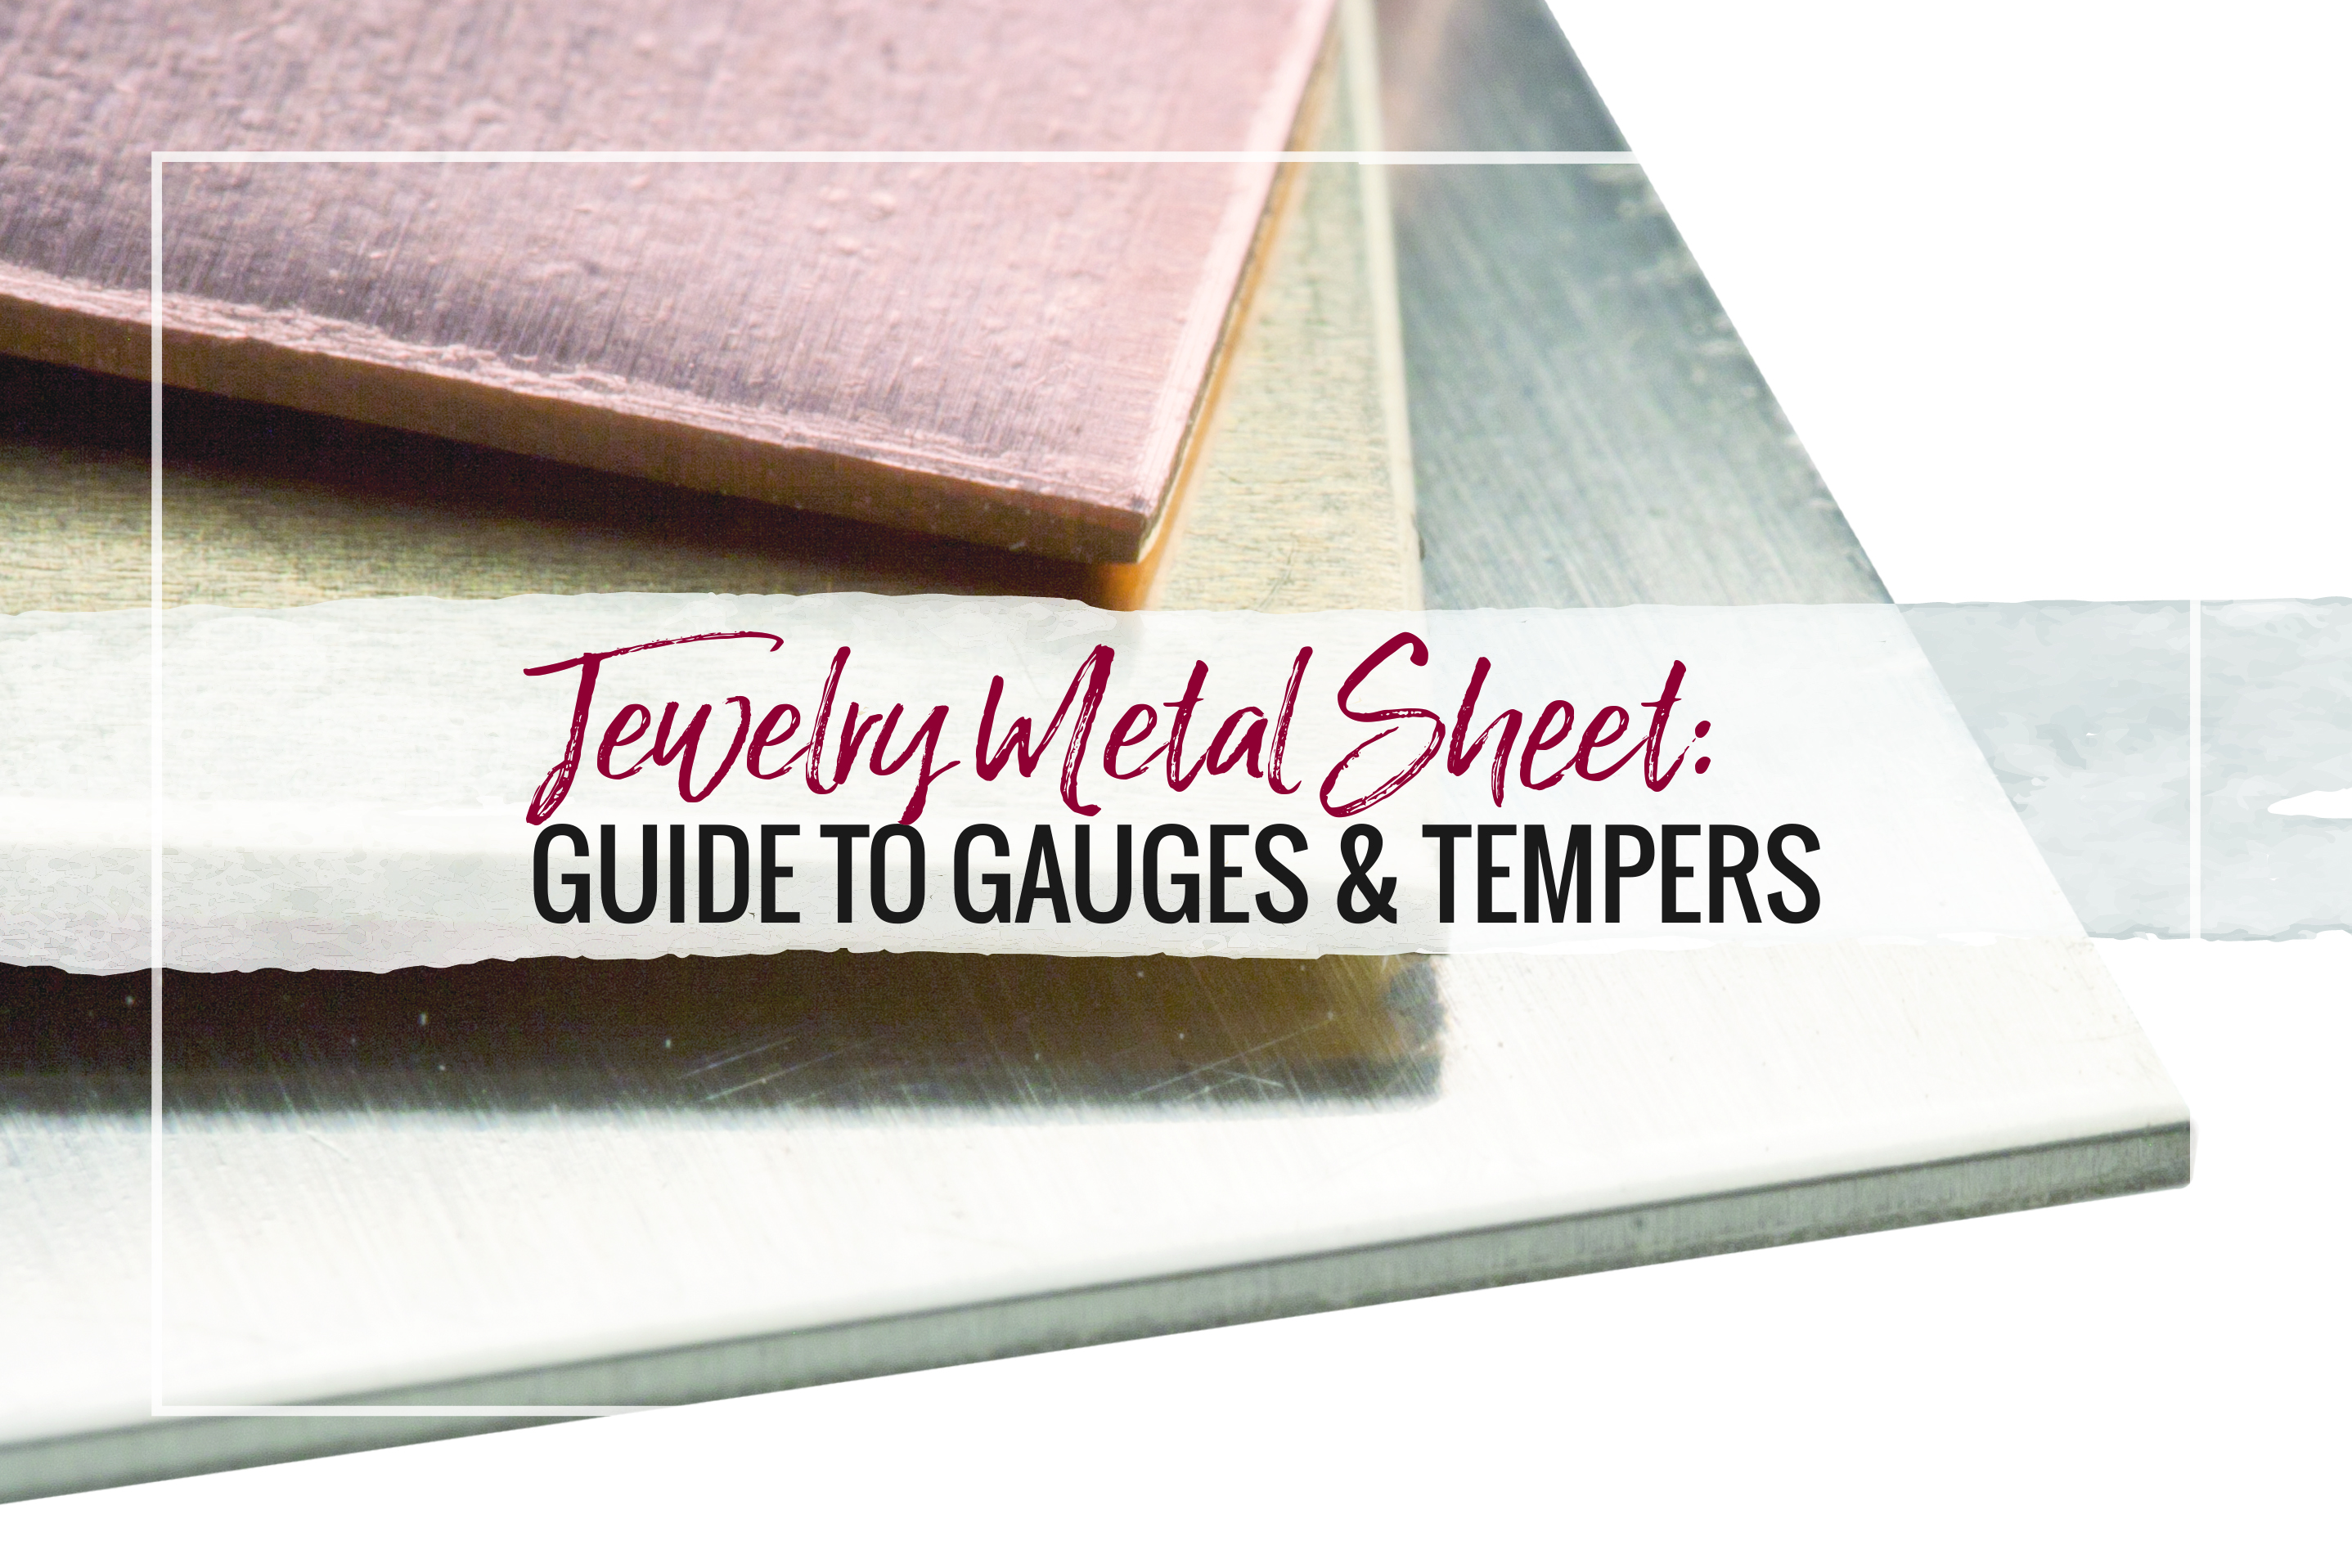 Which gauge and temper should you choose? Our helpful guide can help you choose the right metal sheet gauge and temper for your next jewelry-making project!